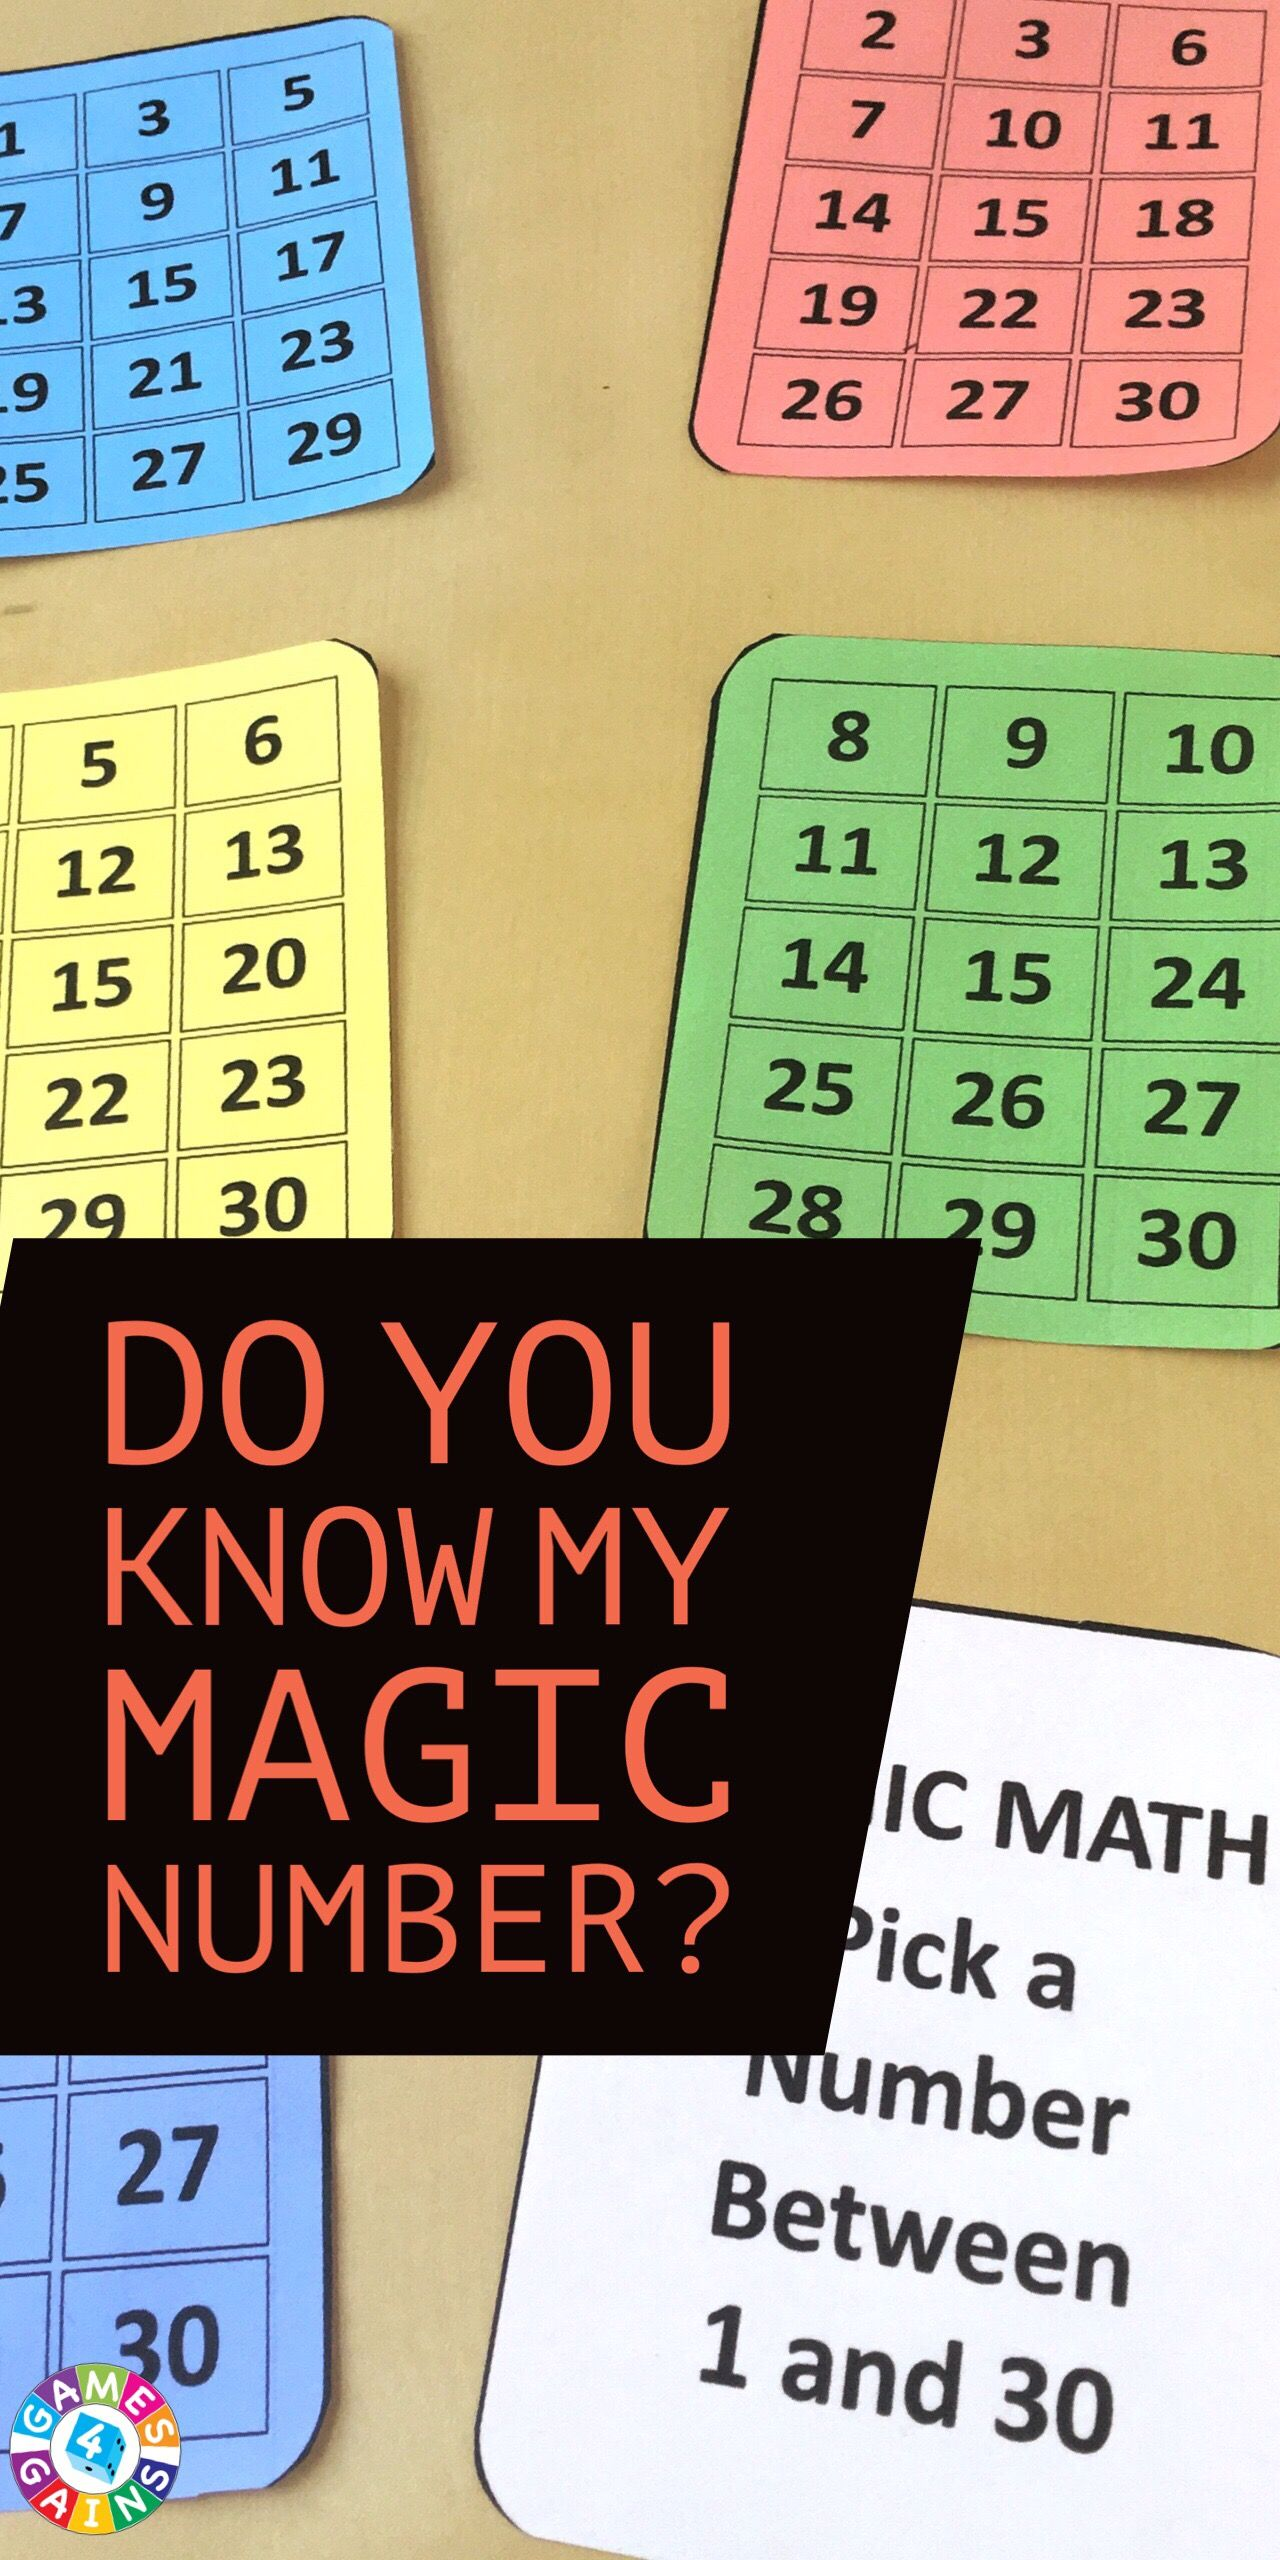 Us Area Codes In Numerical Order%0A Amaze Your Students With This Math Magic Trick